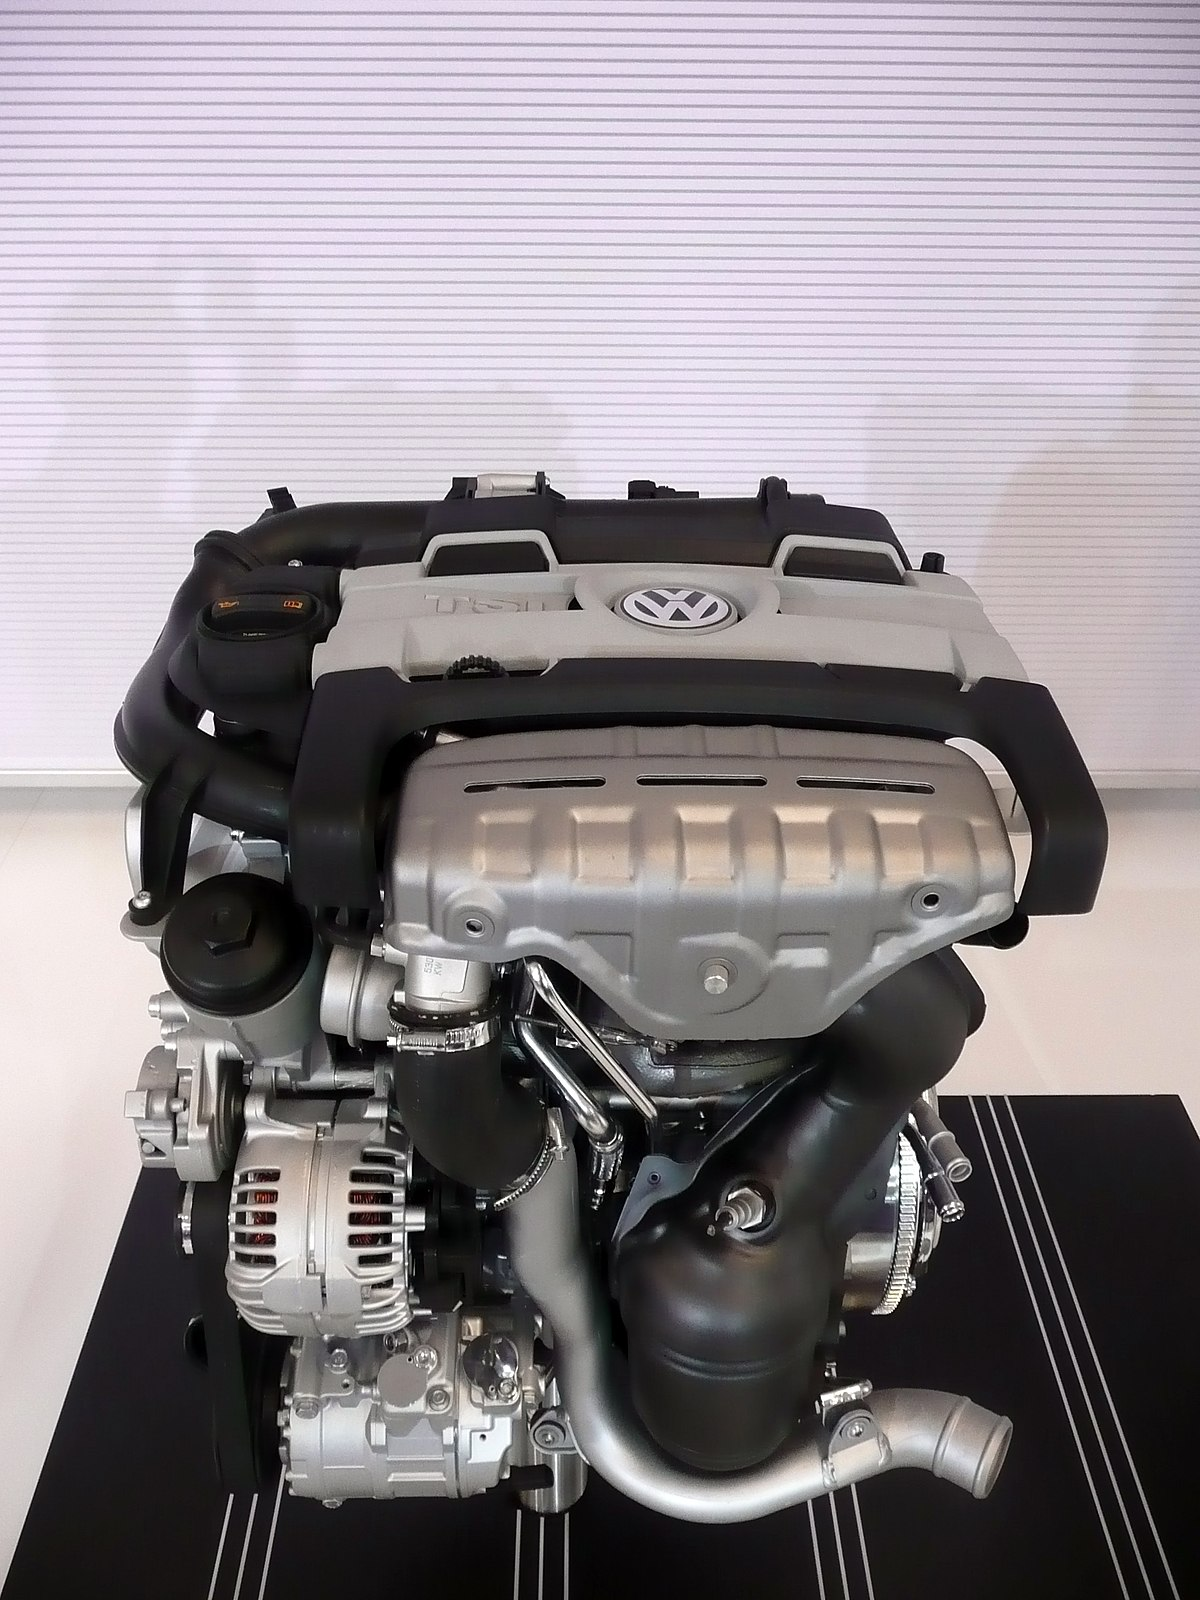 List of Volkswagen Group petrol engines - WikipediaWikipedia